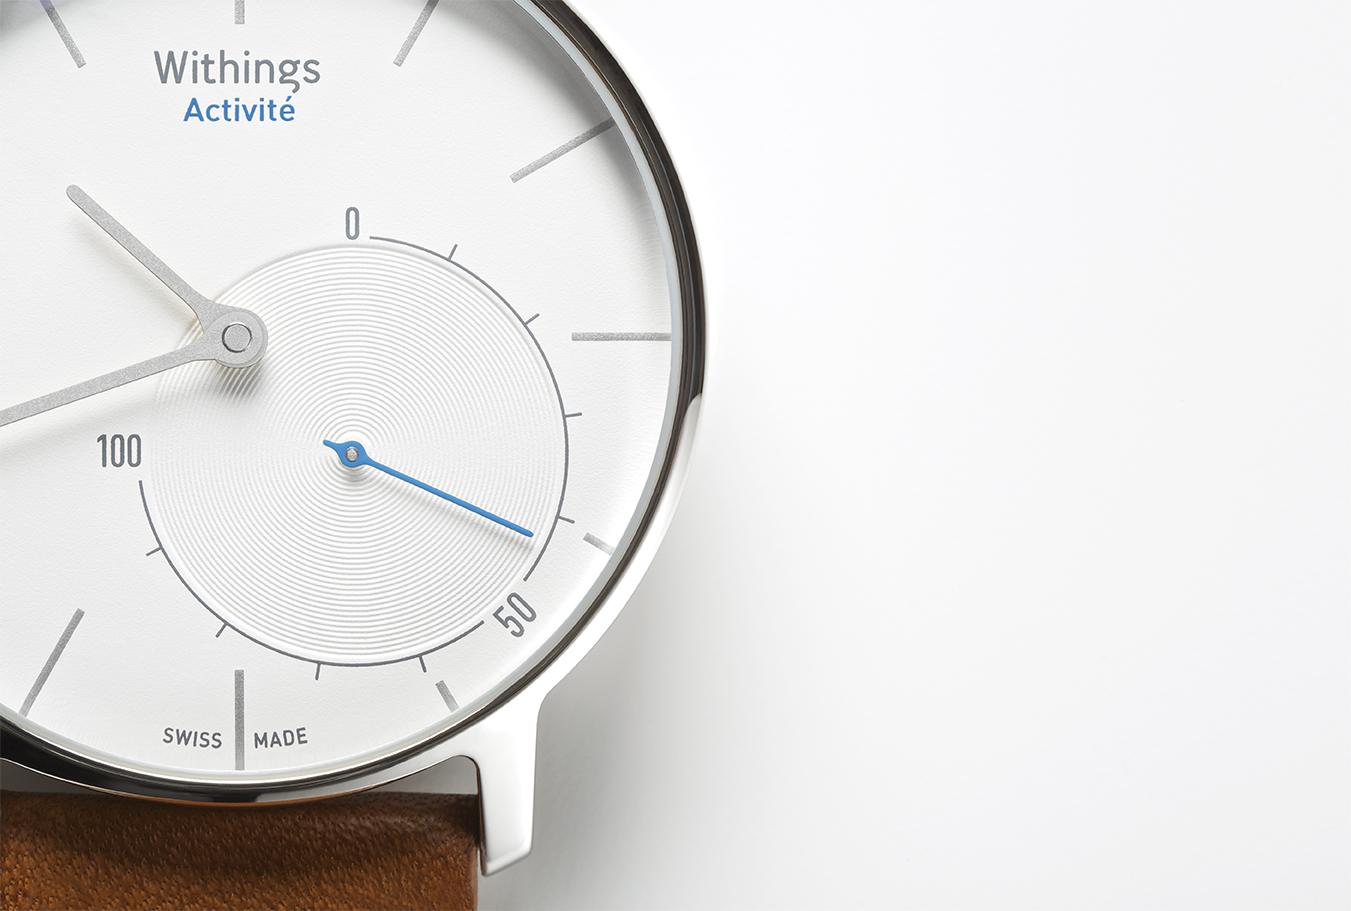 Withings_Activité_daily_cappuccino_lifestyle_blog